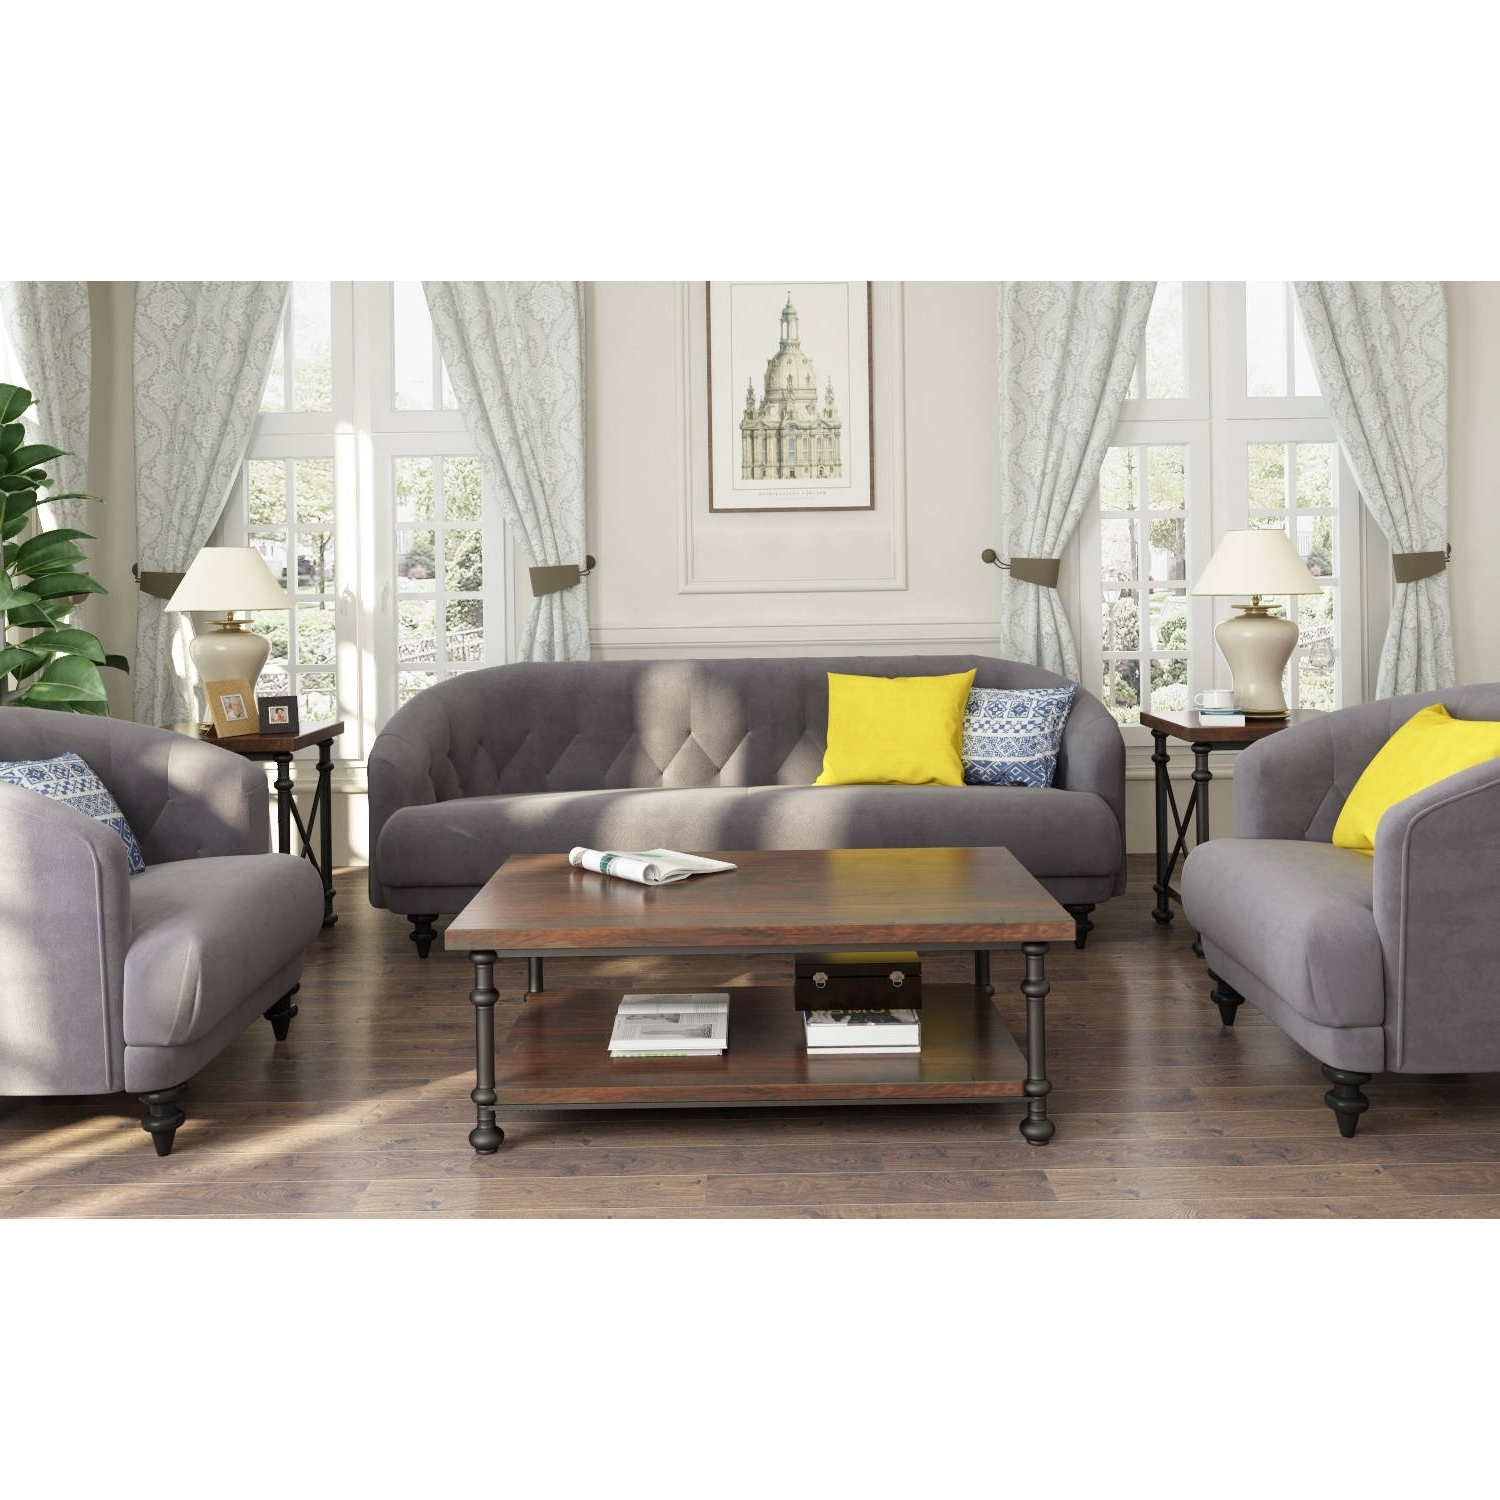 Brilliant Sectional Sofas Under 600 – Buildsimplehome In Widely Used Sectional Sofas Under (View 8 of 15)